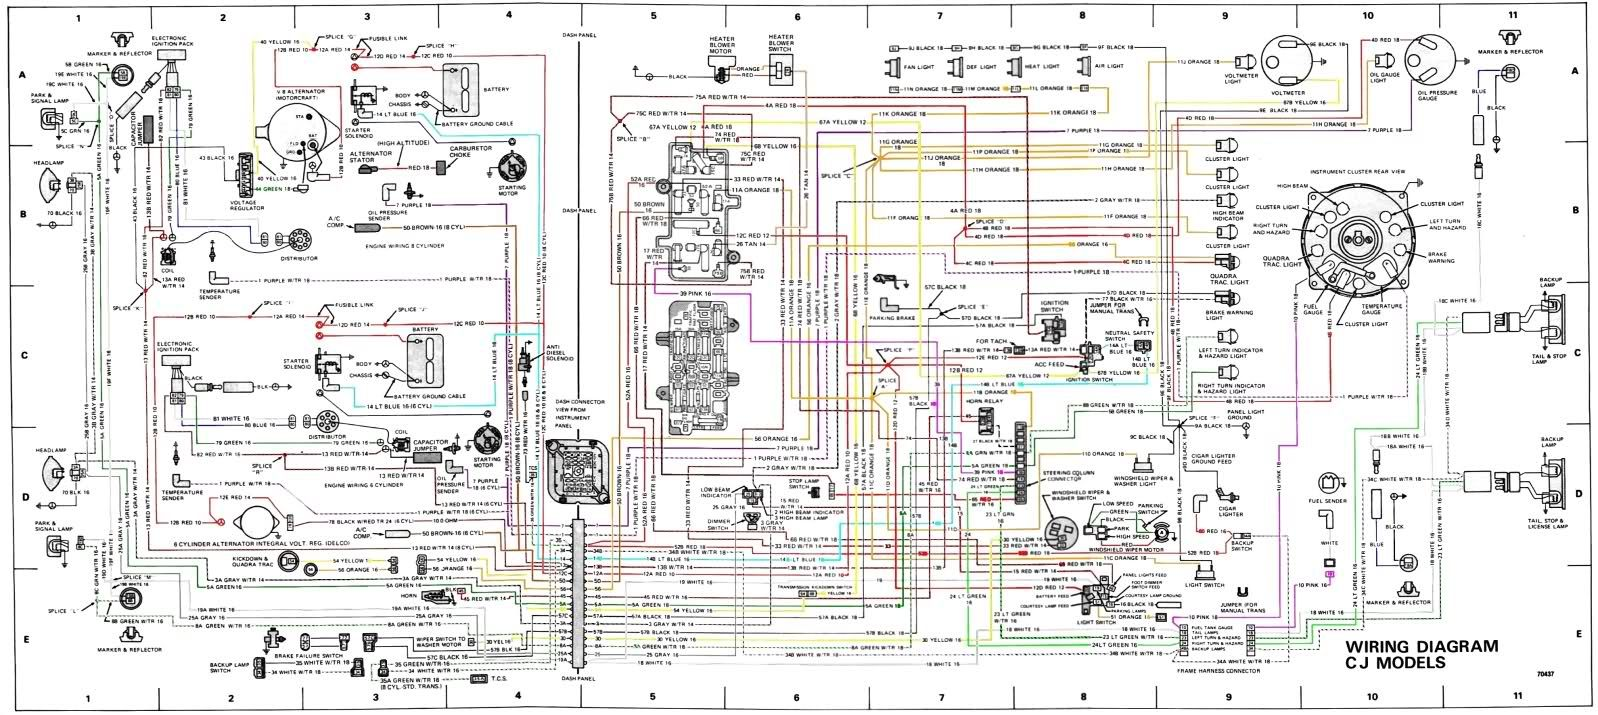 Image result for jeep cj7 wiring harness diagram | Jeep cj7, Cj7, Jeep cj | 1980 Cj7 Wiring Diagram |  | Pinterest